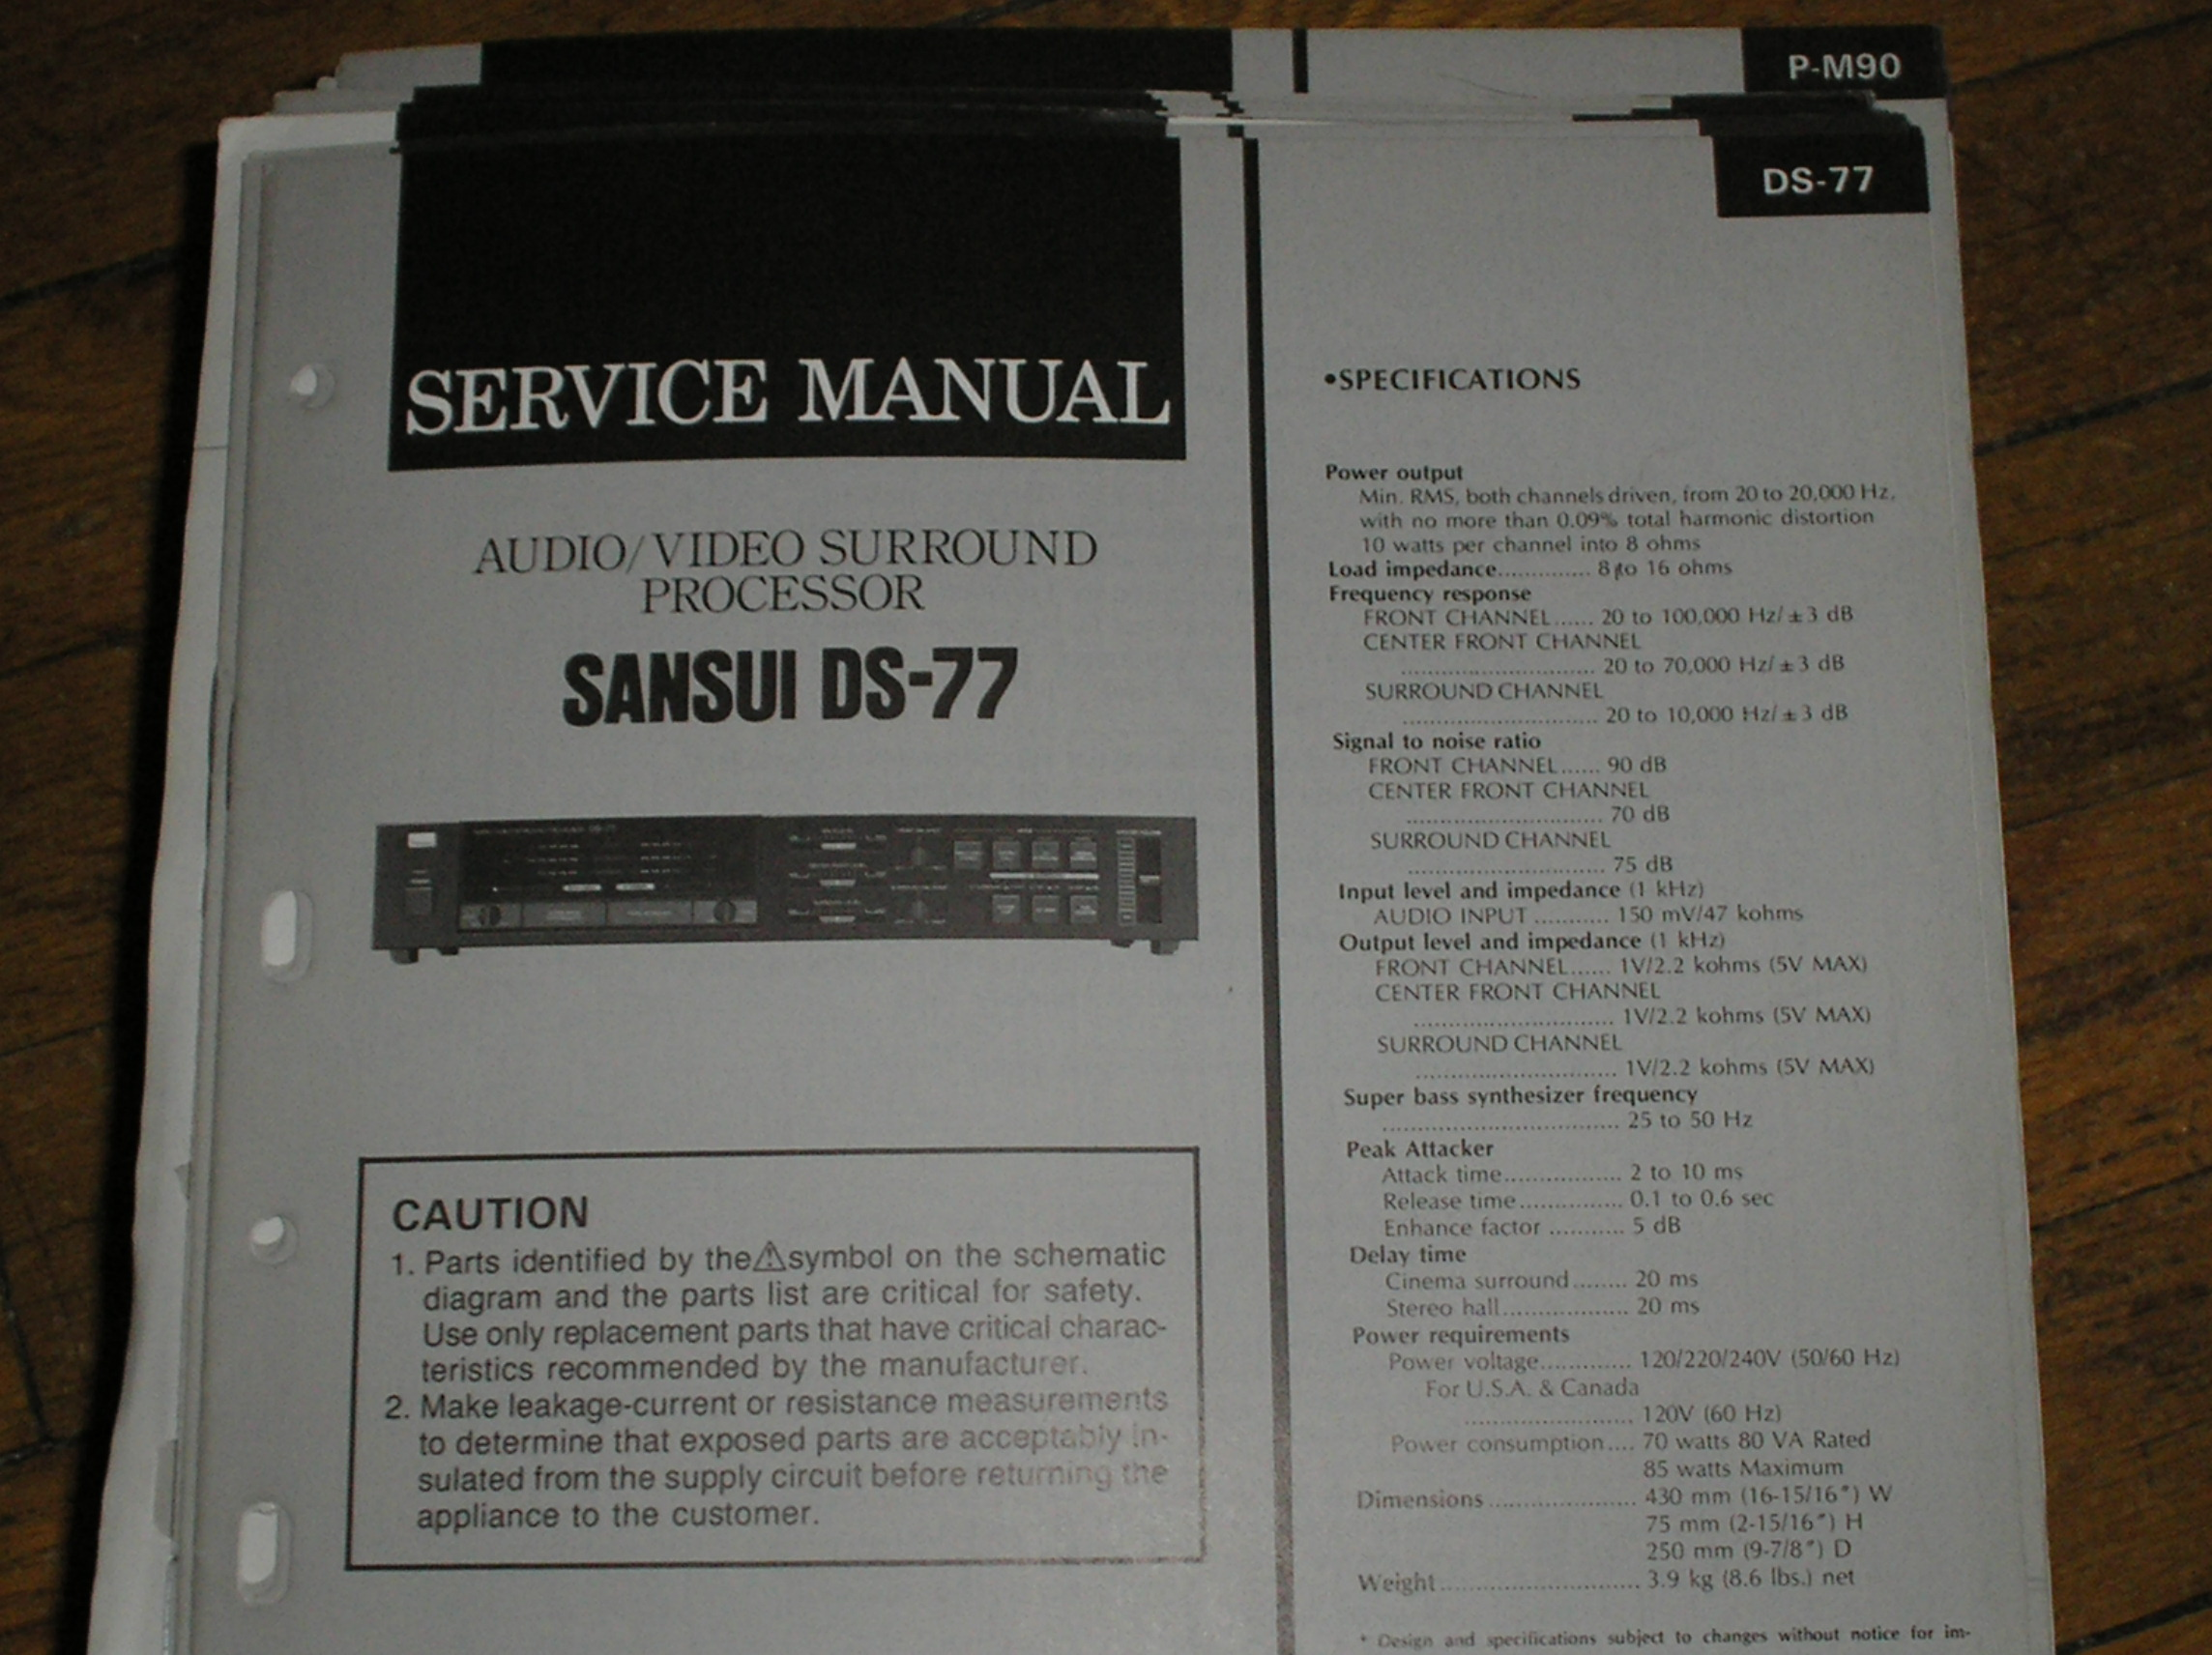 DS-77 Audio Video Surround Processor Service Manual